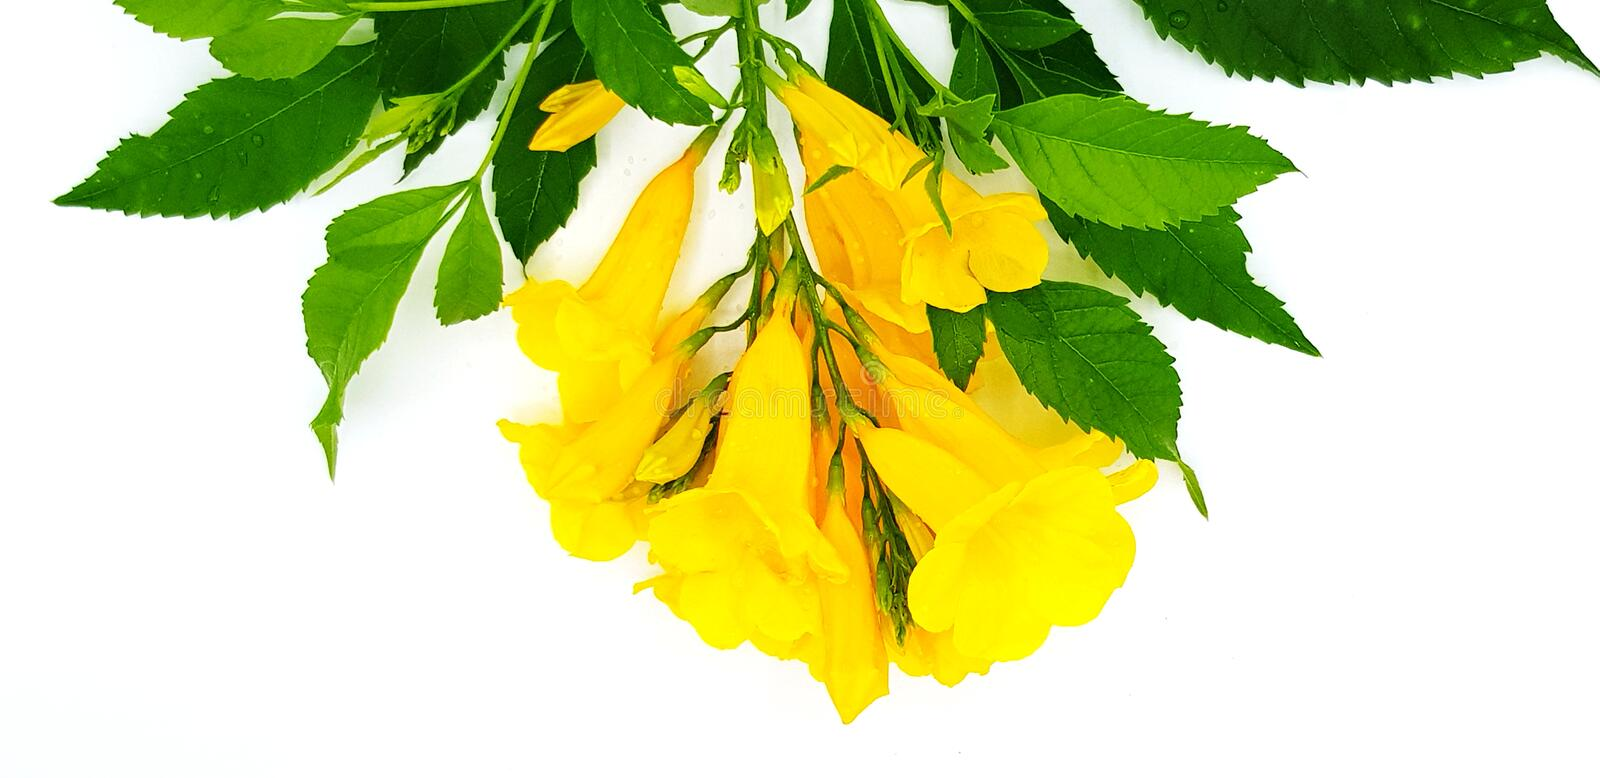 Beautiful Yellow flower bouquet Yellow elder, Trumpetbush, Trumpetflower with green leaves isolated on white background royalty free stock photo